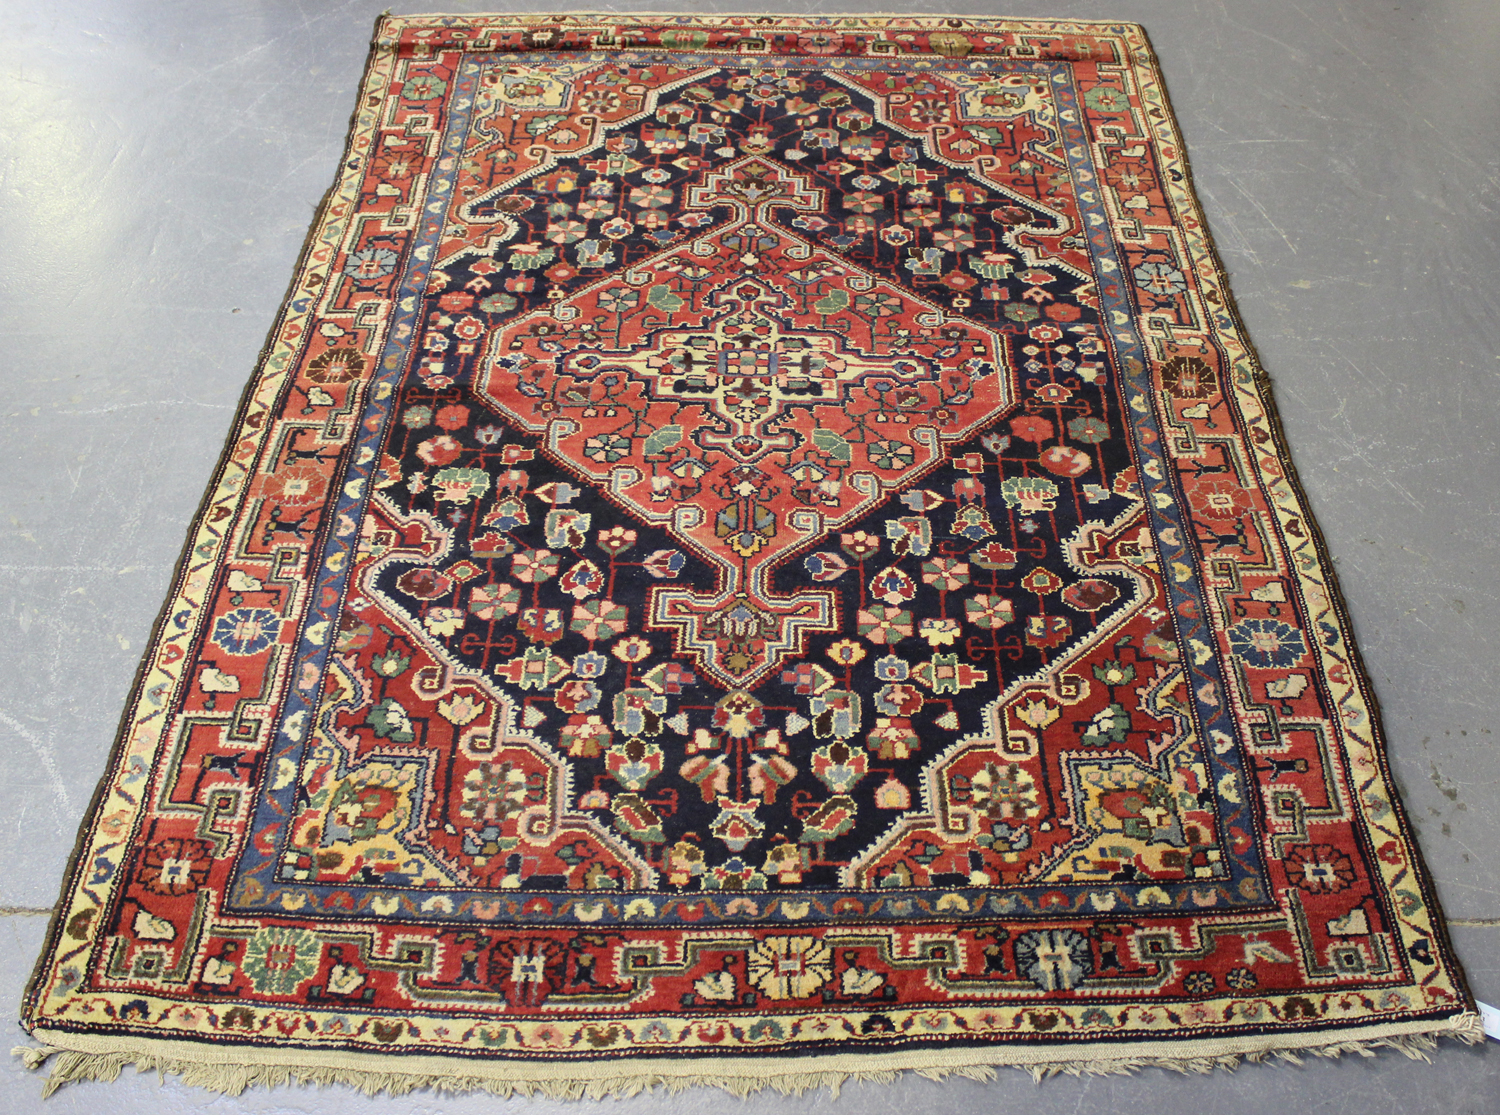 Lot 2913 - A Hamadan rug, North-west Persia, early/mid-20th century, the charcoal field with a red lozenge